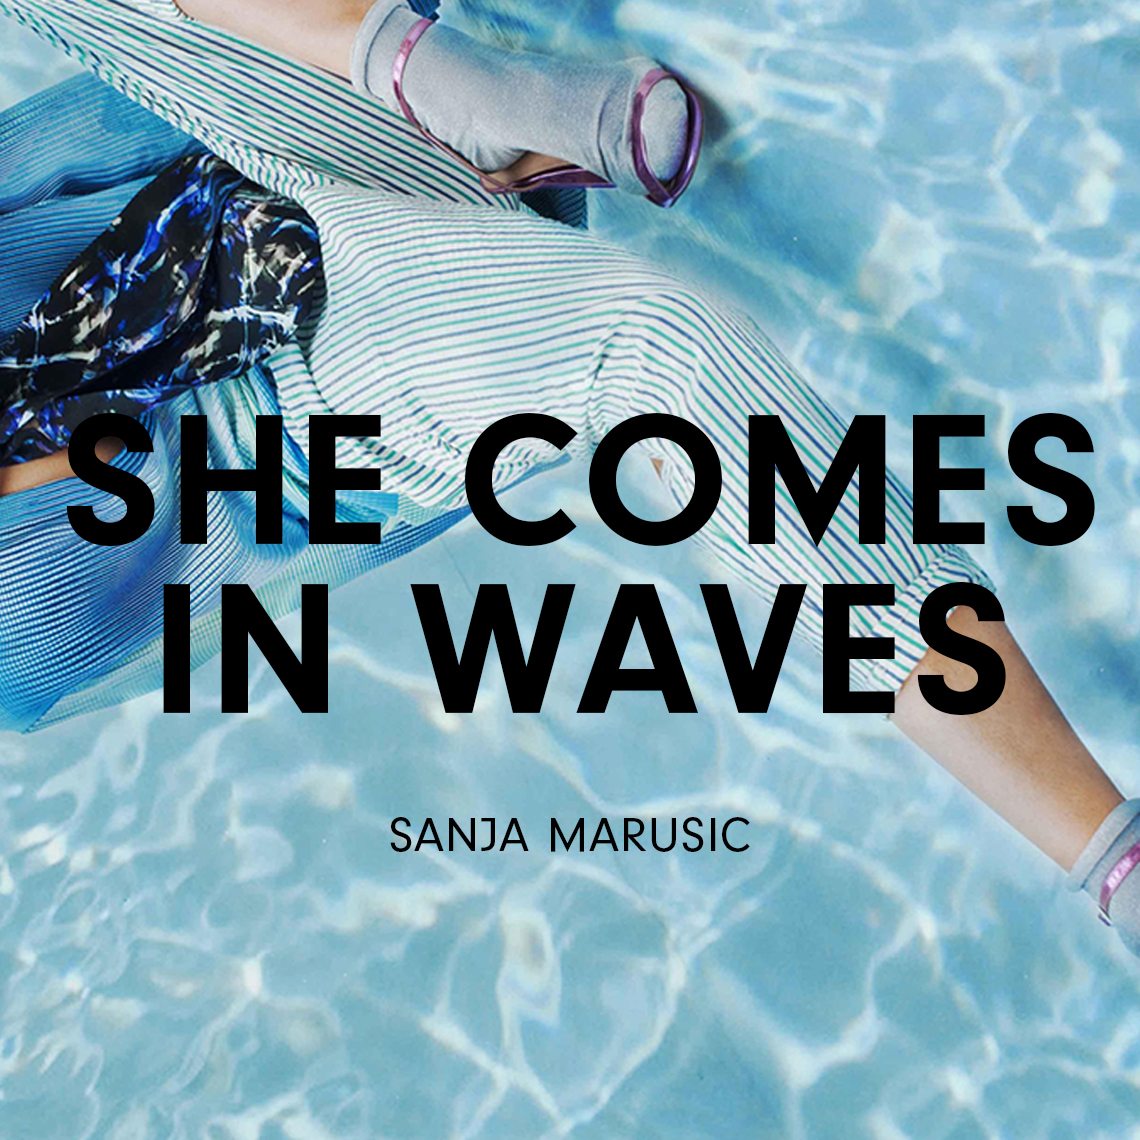 SHE COMES IN WAVES